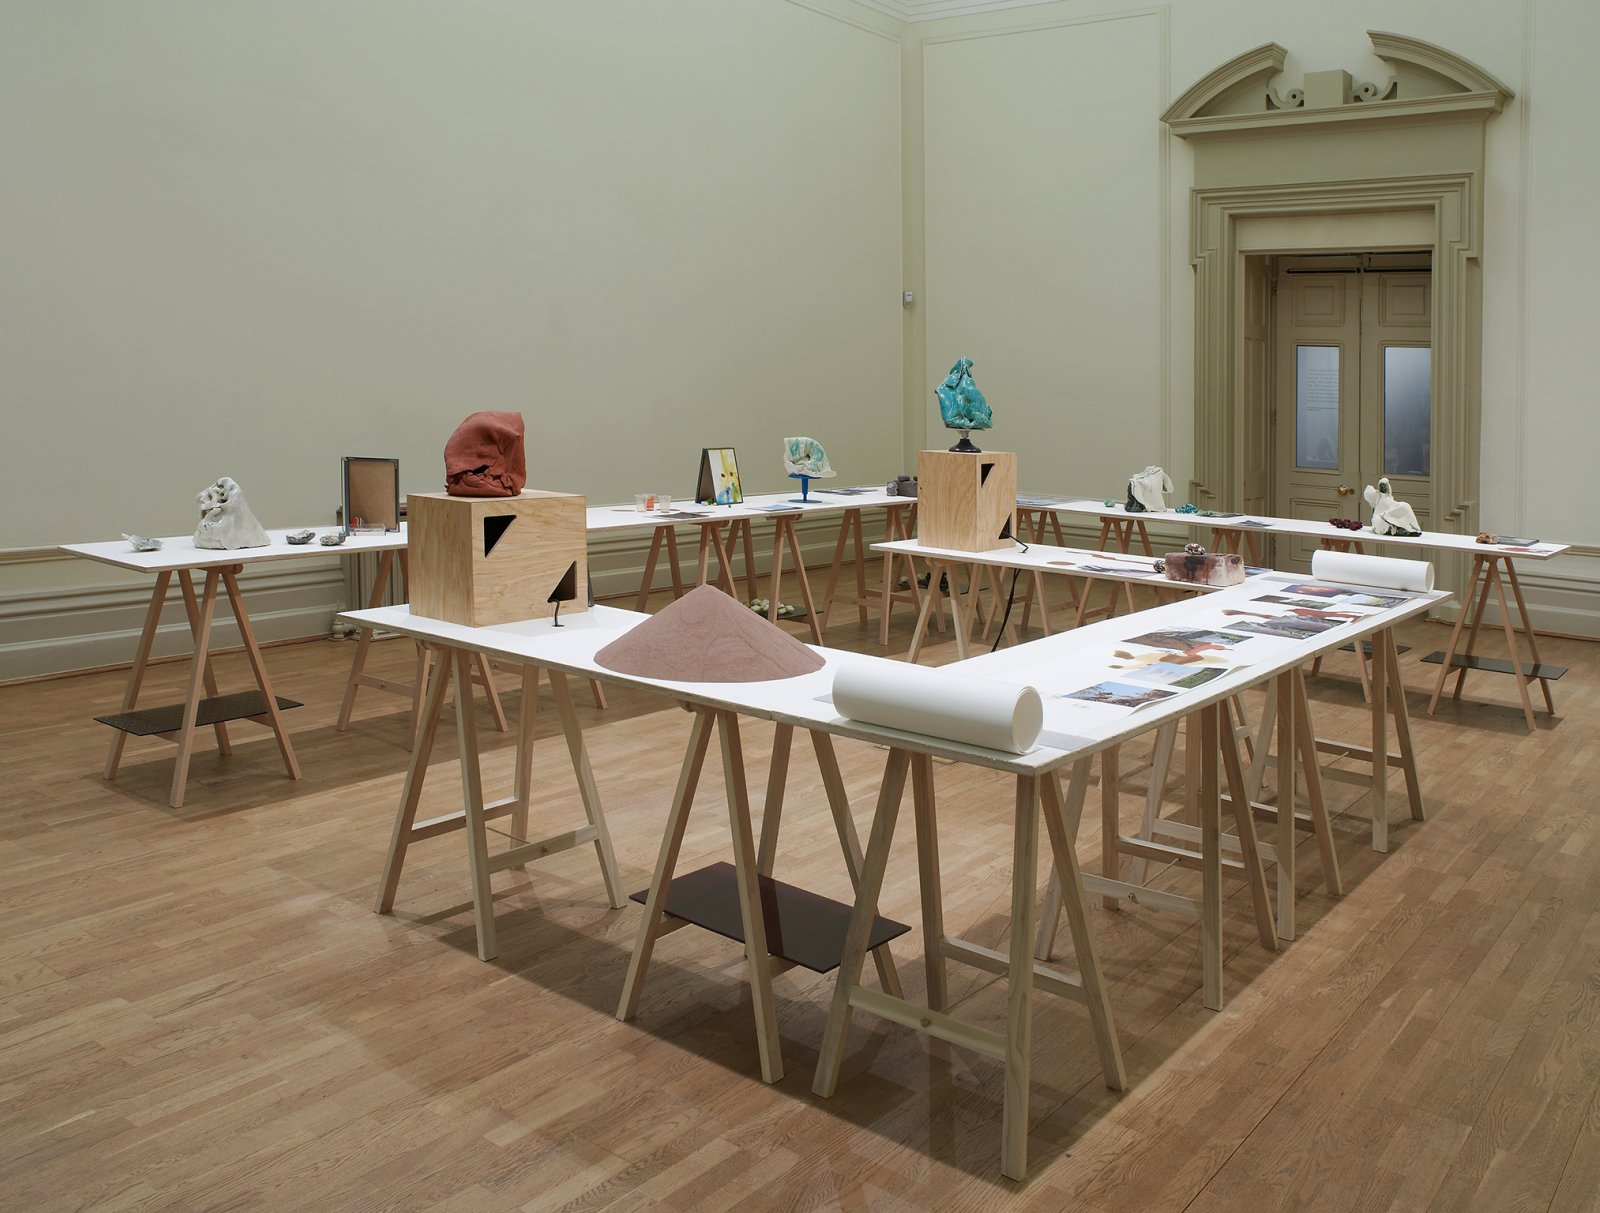 Christina Mackie, The Judges III, 2013, mixed media, dimensions variable. Installation view, Nottingham Castle Museum, 2013 by Christina Mackie